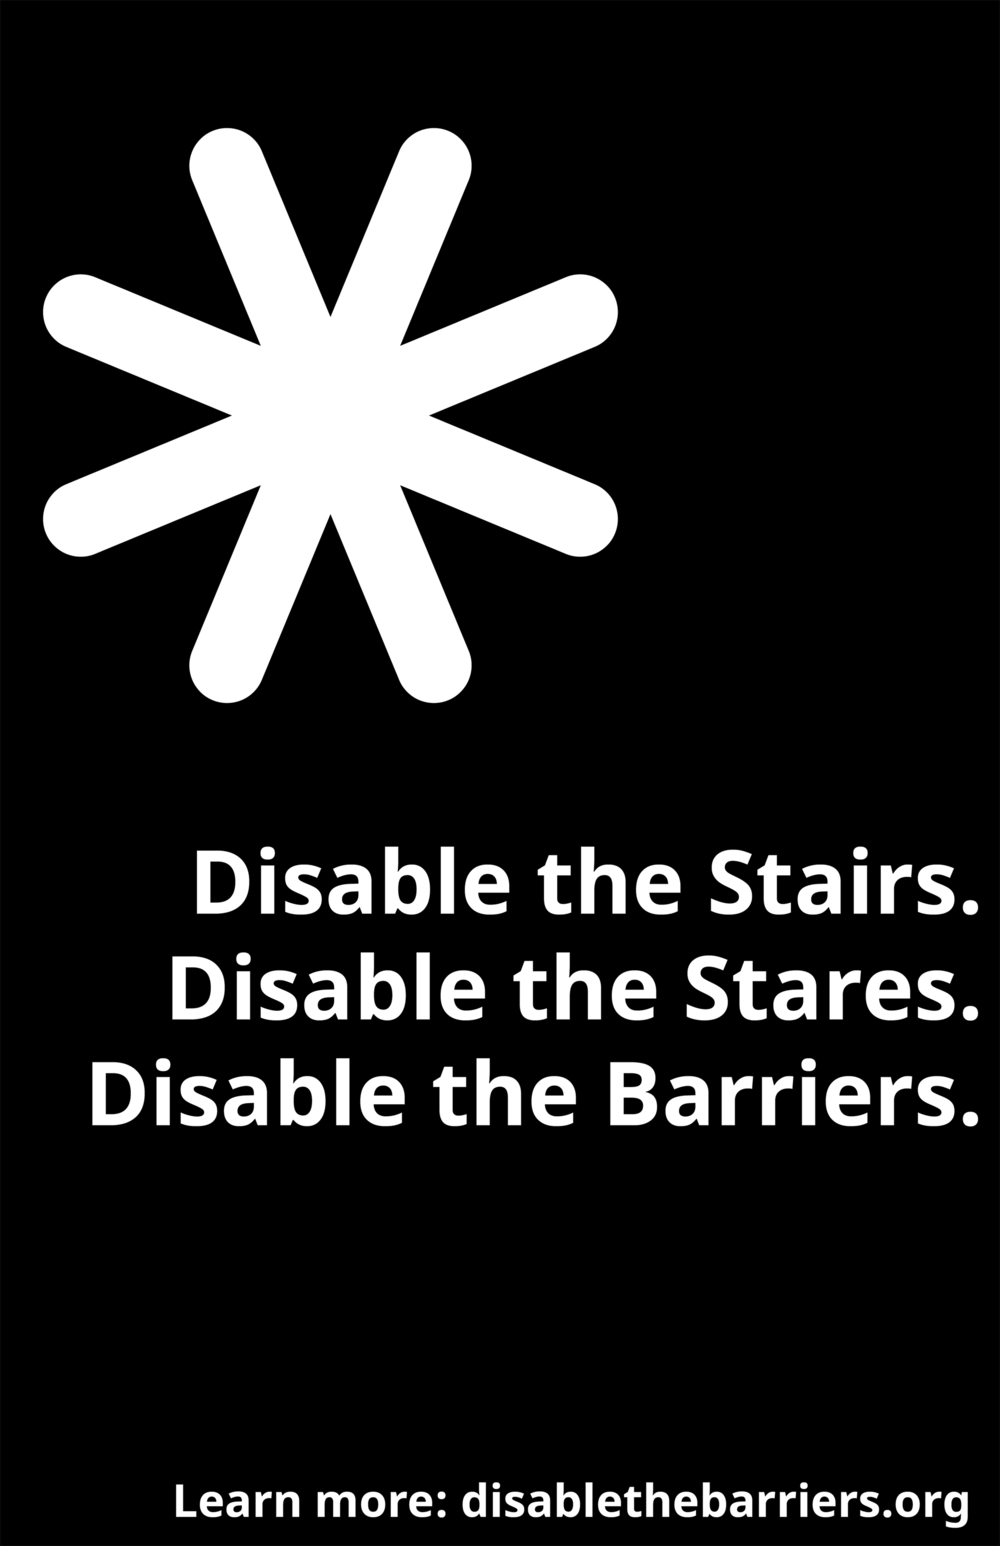 Poster displaying the Disable the Barriers slogan, tagline and URL, over a full black background.